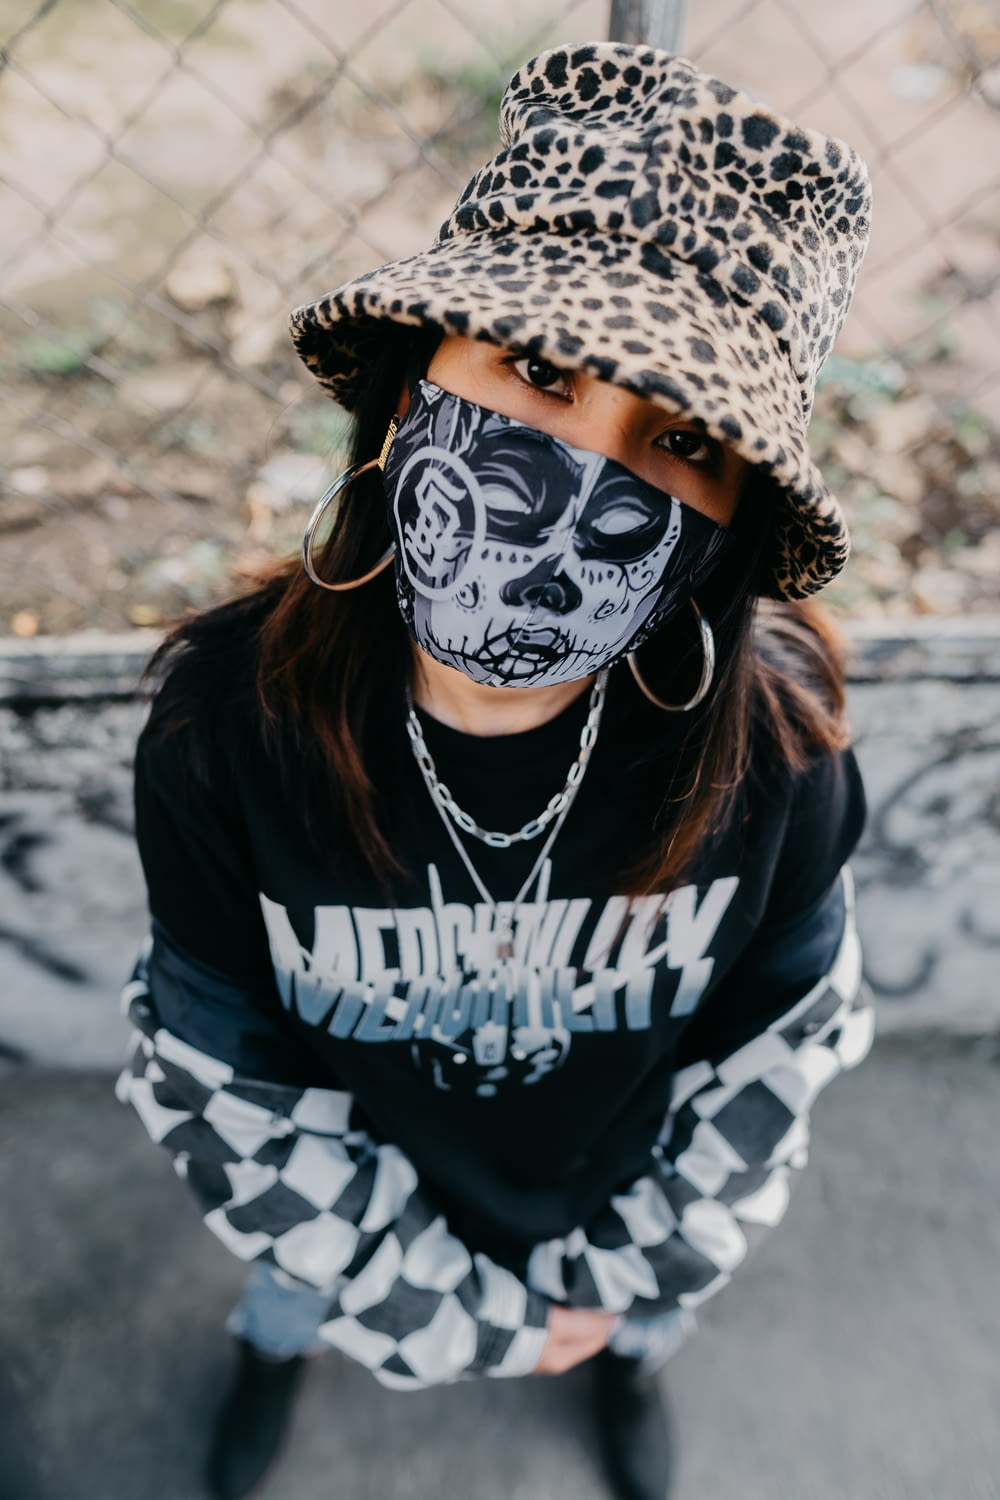 person wearing black and white skull mask